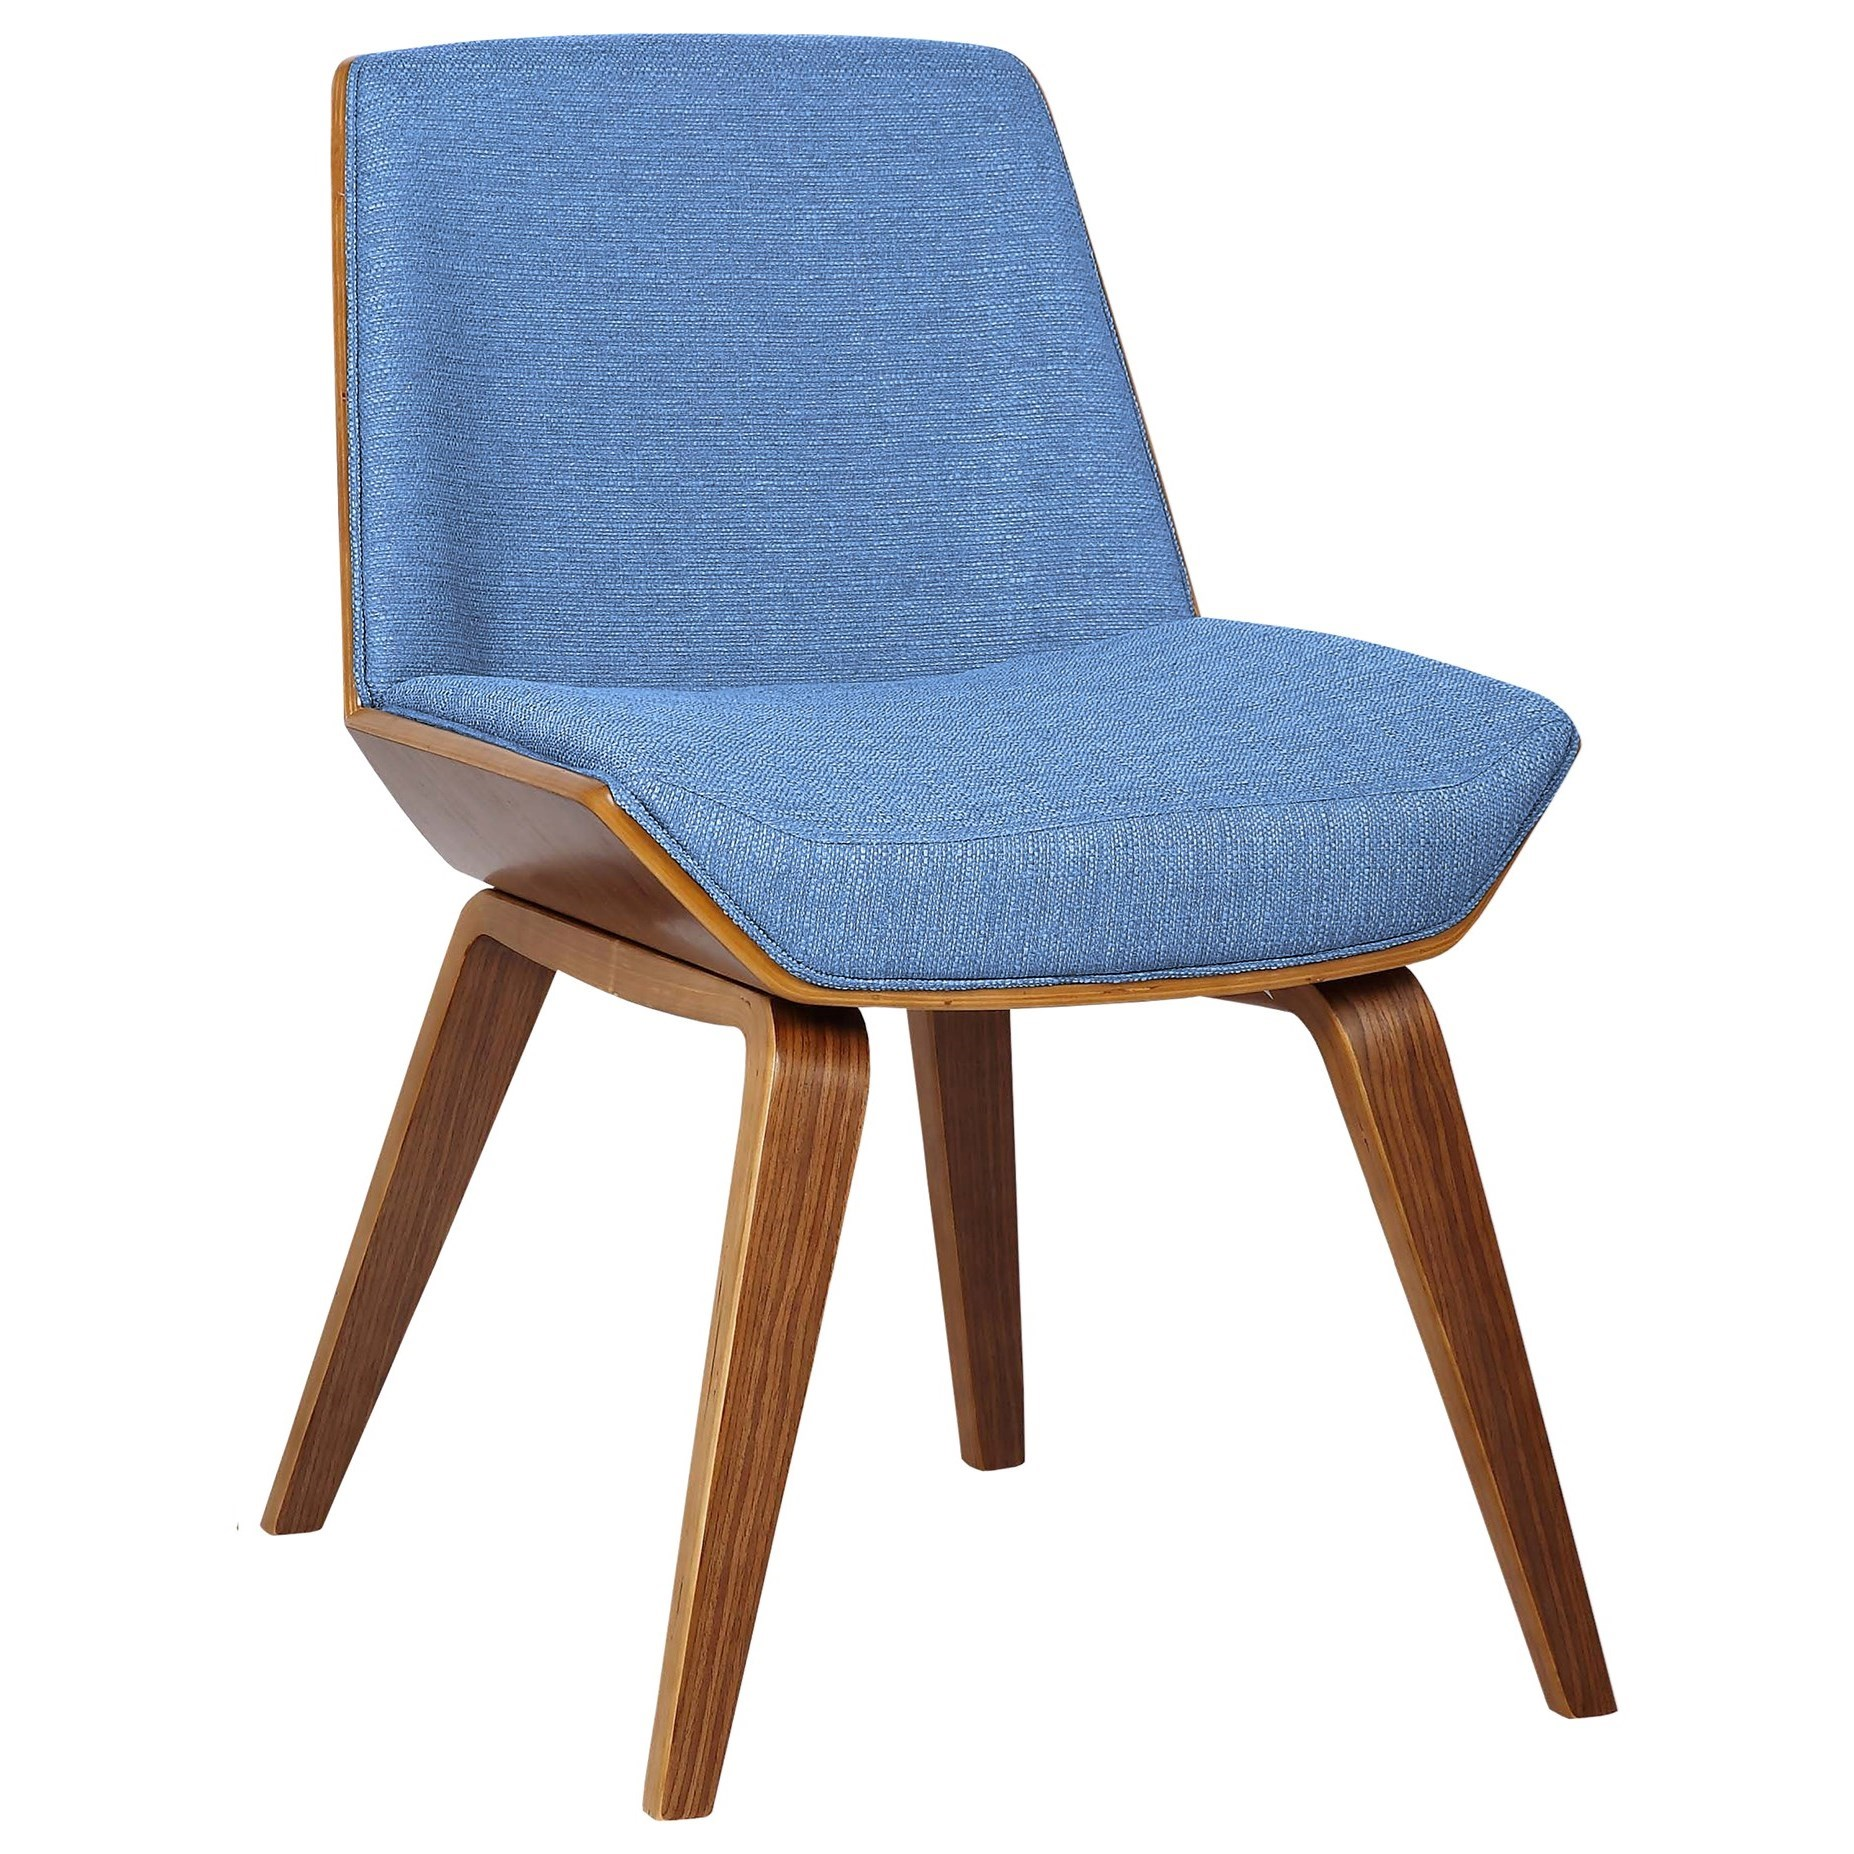 Agi Mid-Century Side Chair in Blue Fabric at Sadler's Home Furnishings